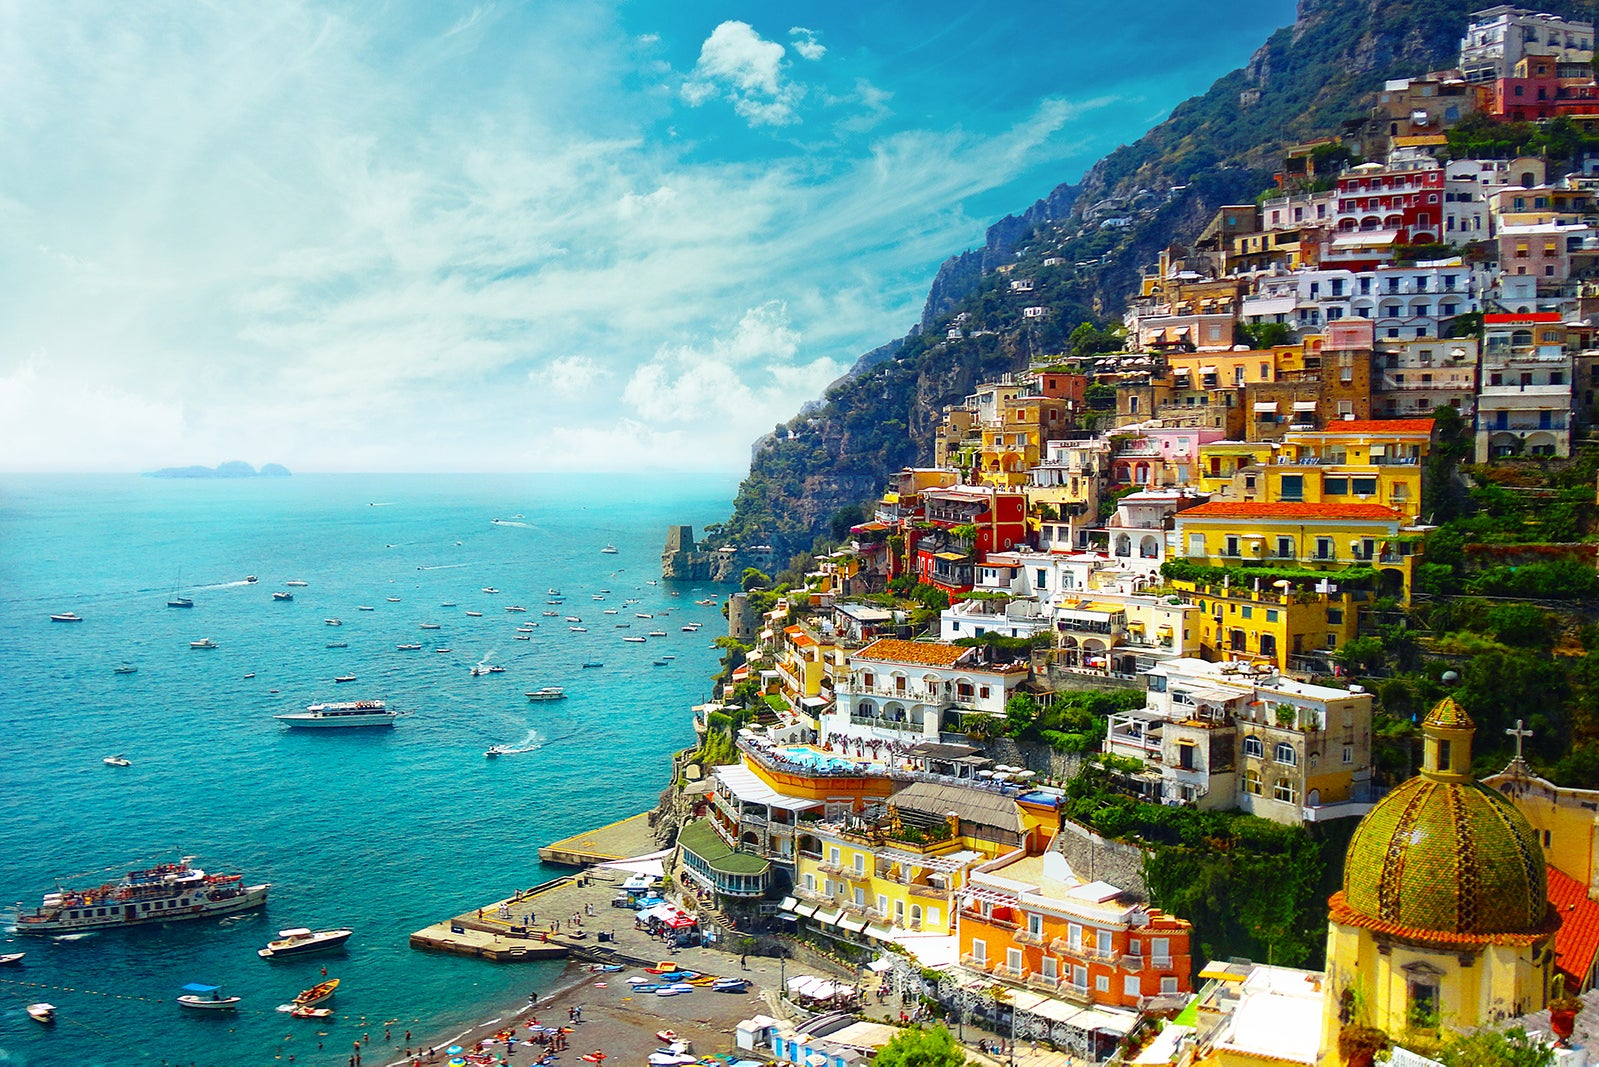 Italy reopening to Americans as soon as May, but don't book just yet - The Points Guy